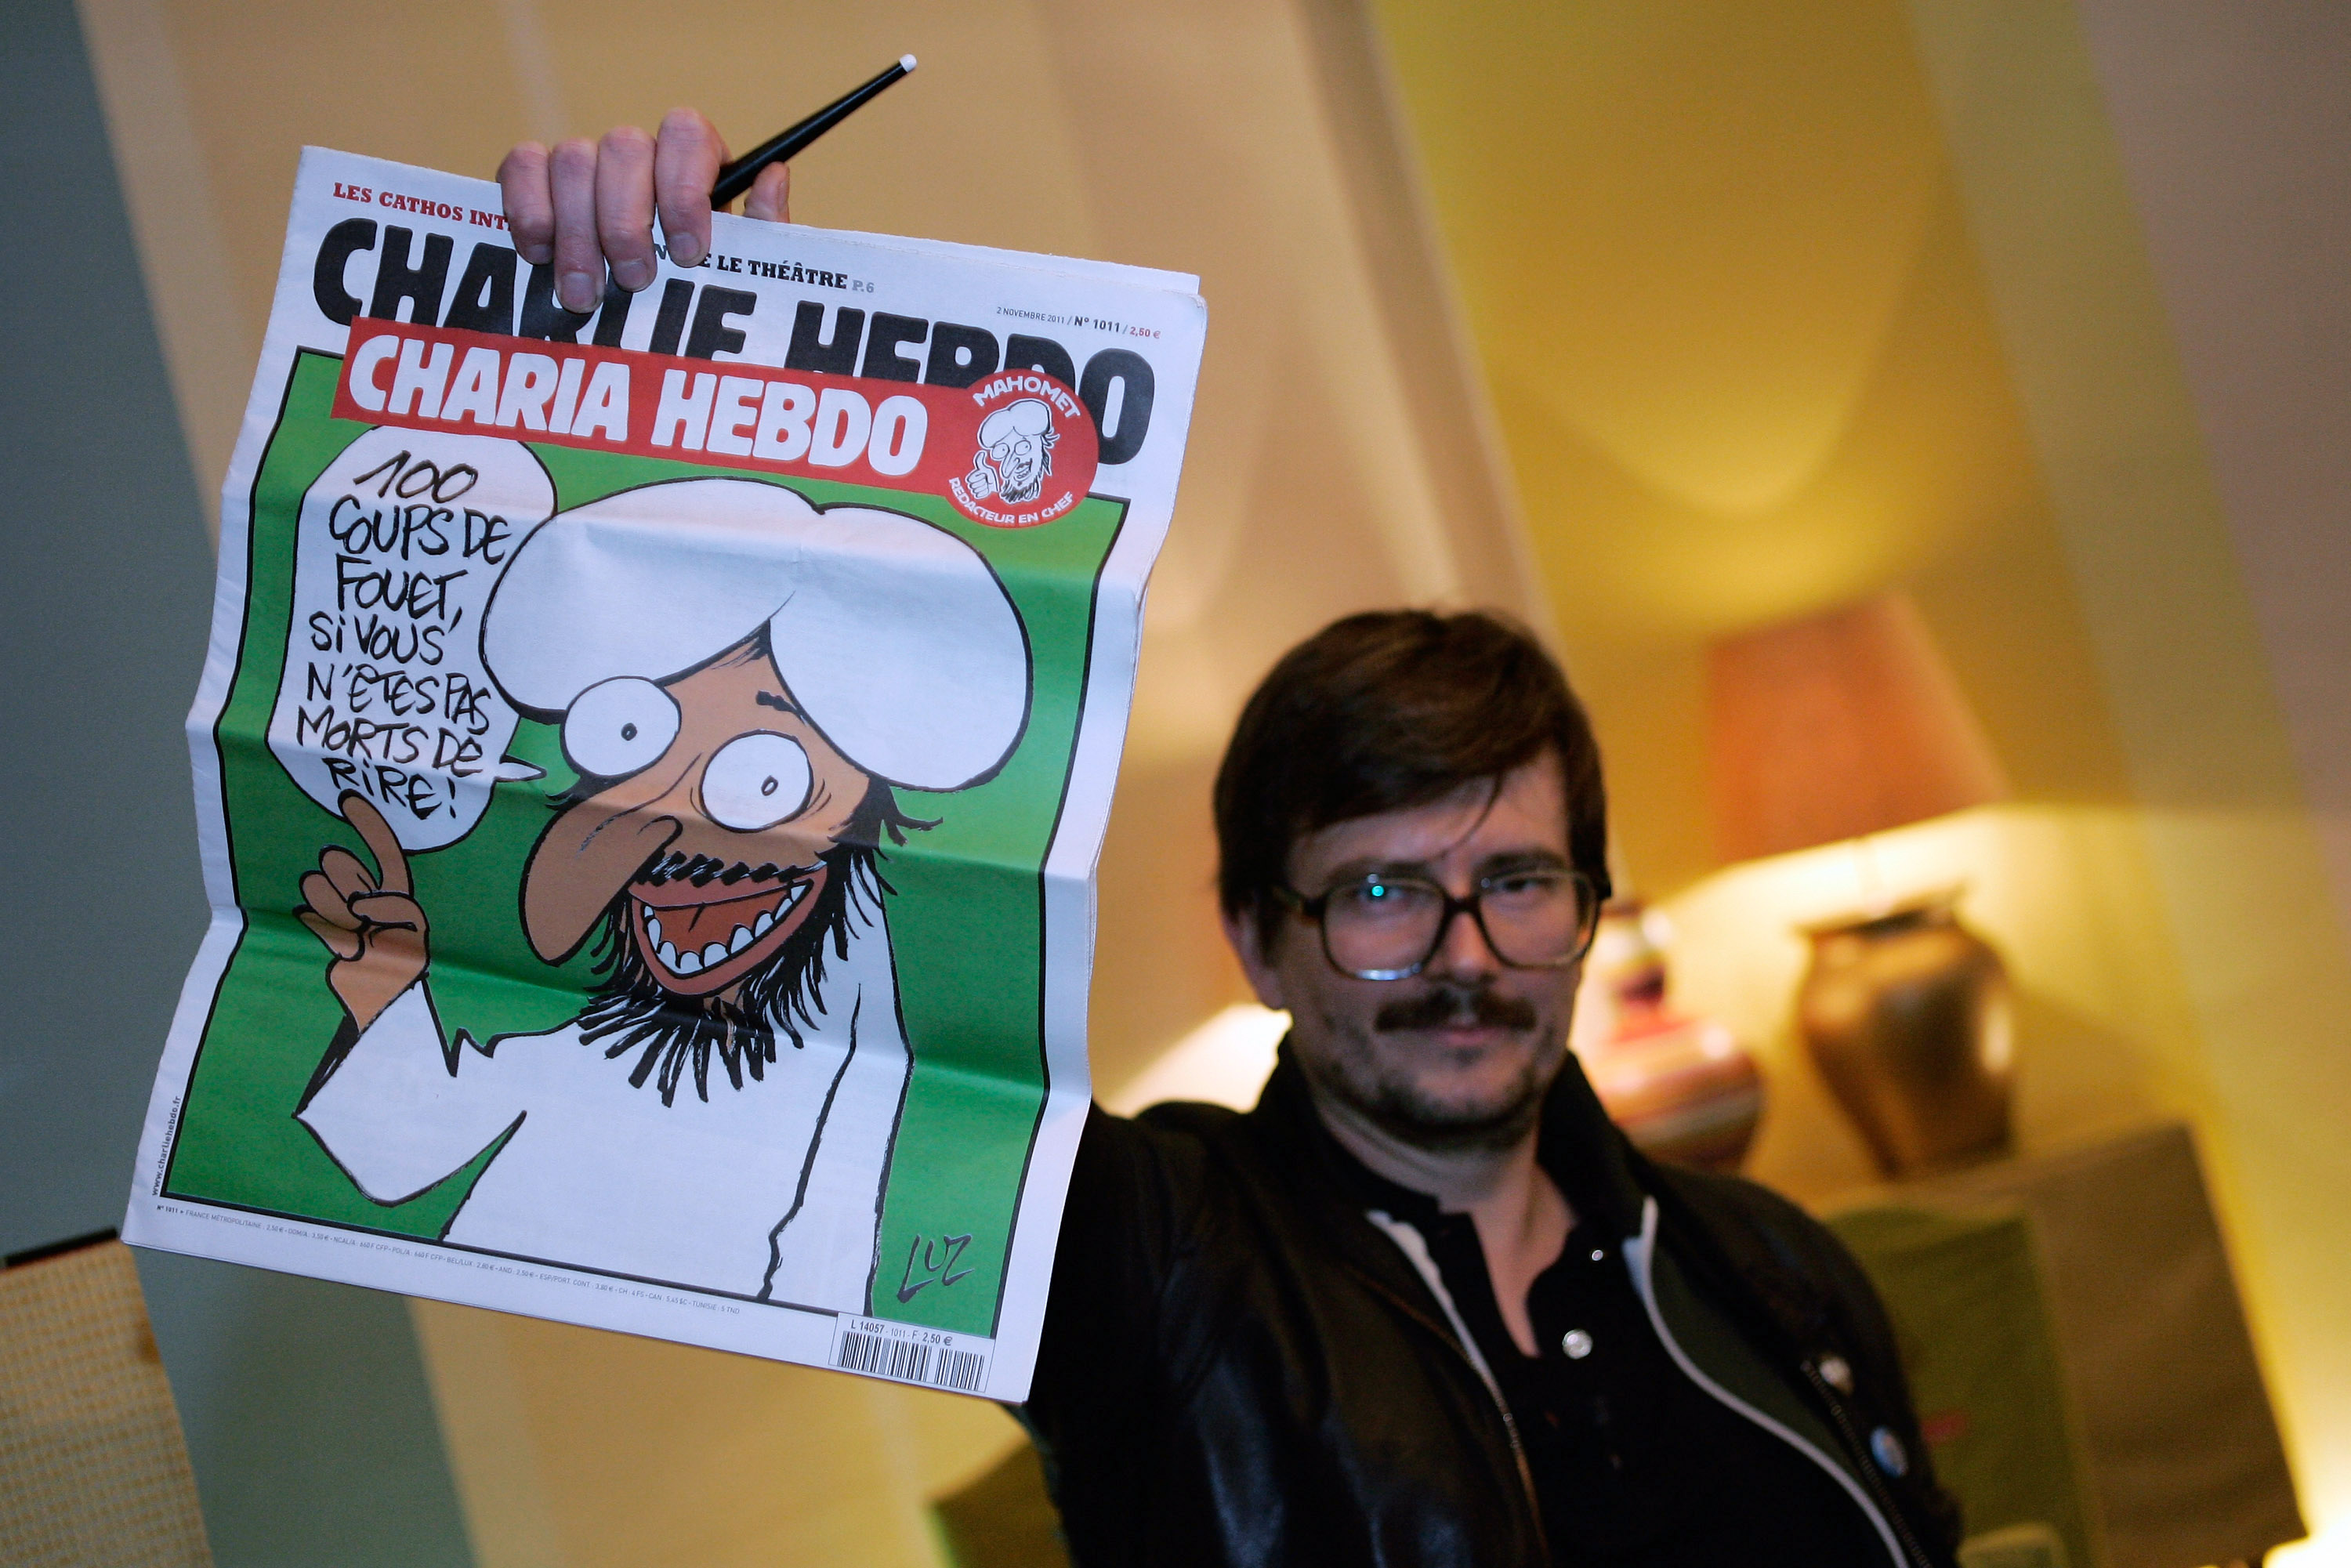 PARIS, FRANCE - NOVEMBER 03:  The Charlie Hebdo' s cartoonist Luz shows a special edition of French satirical magazine Charli